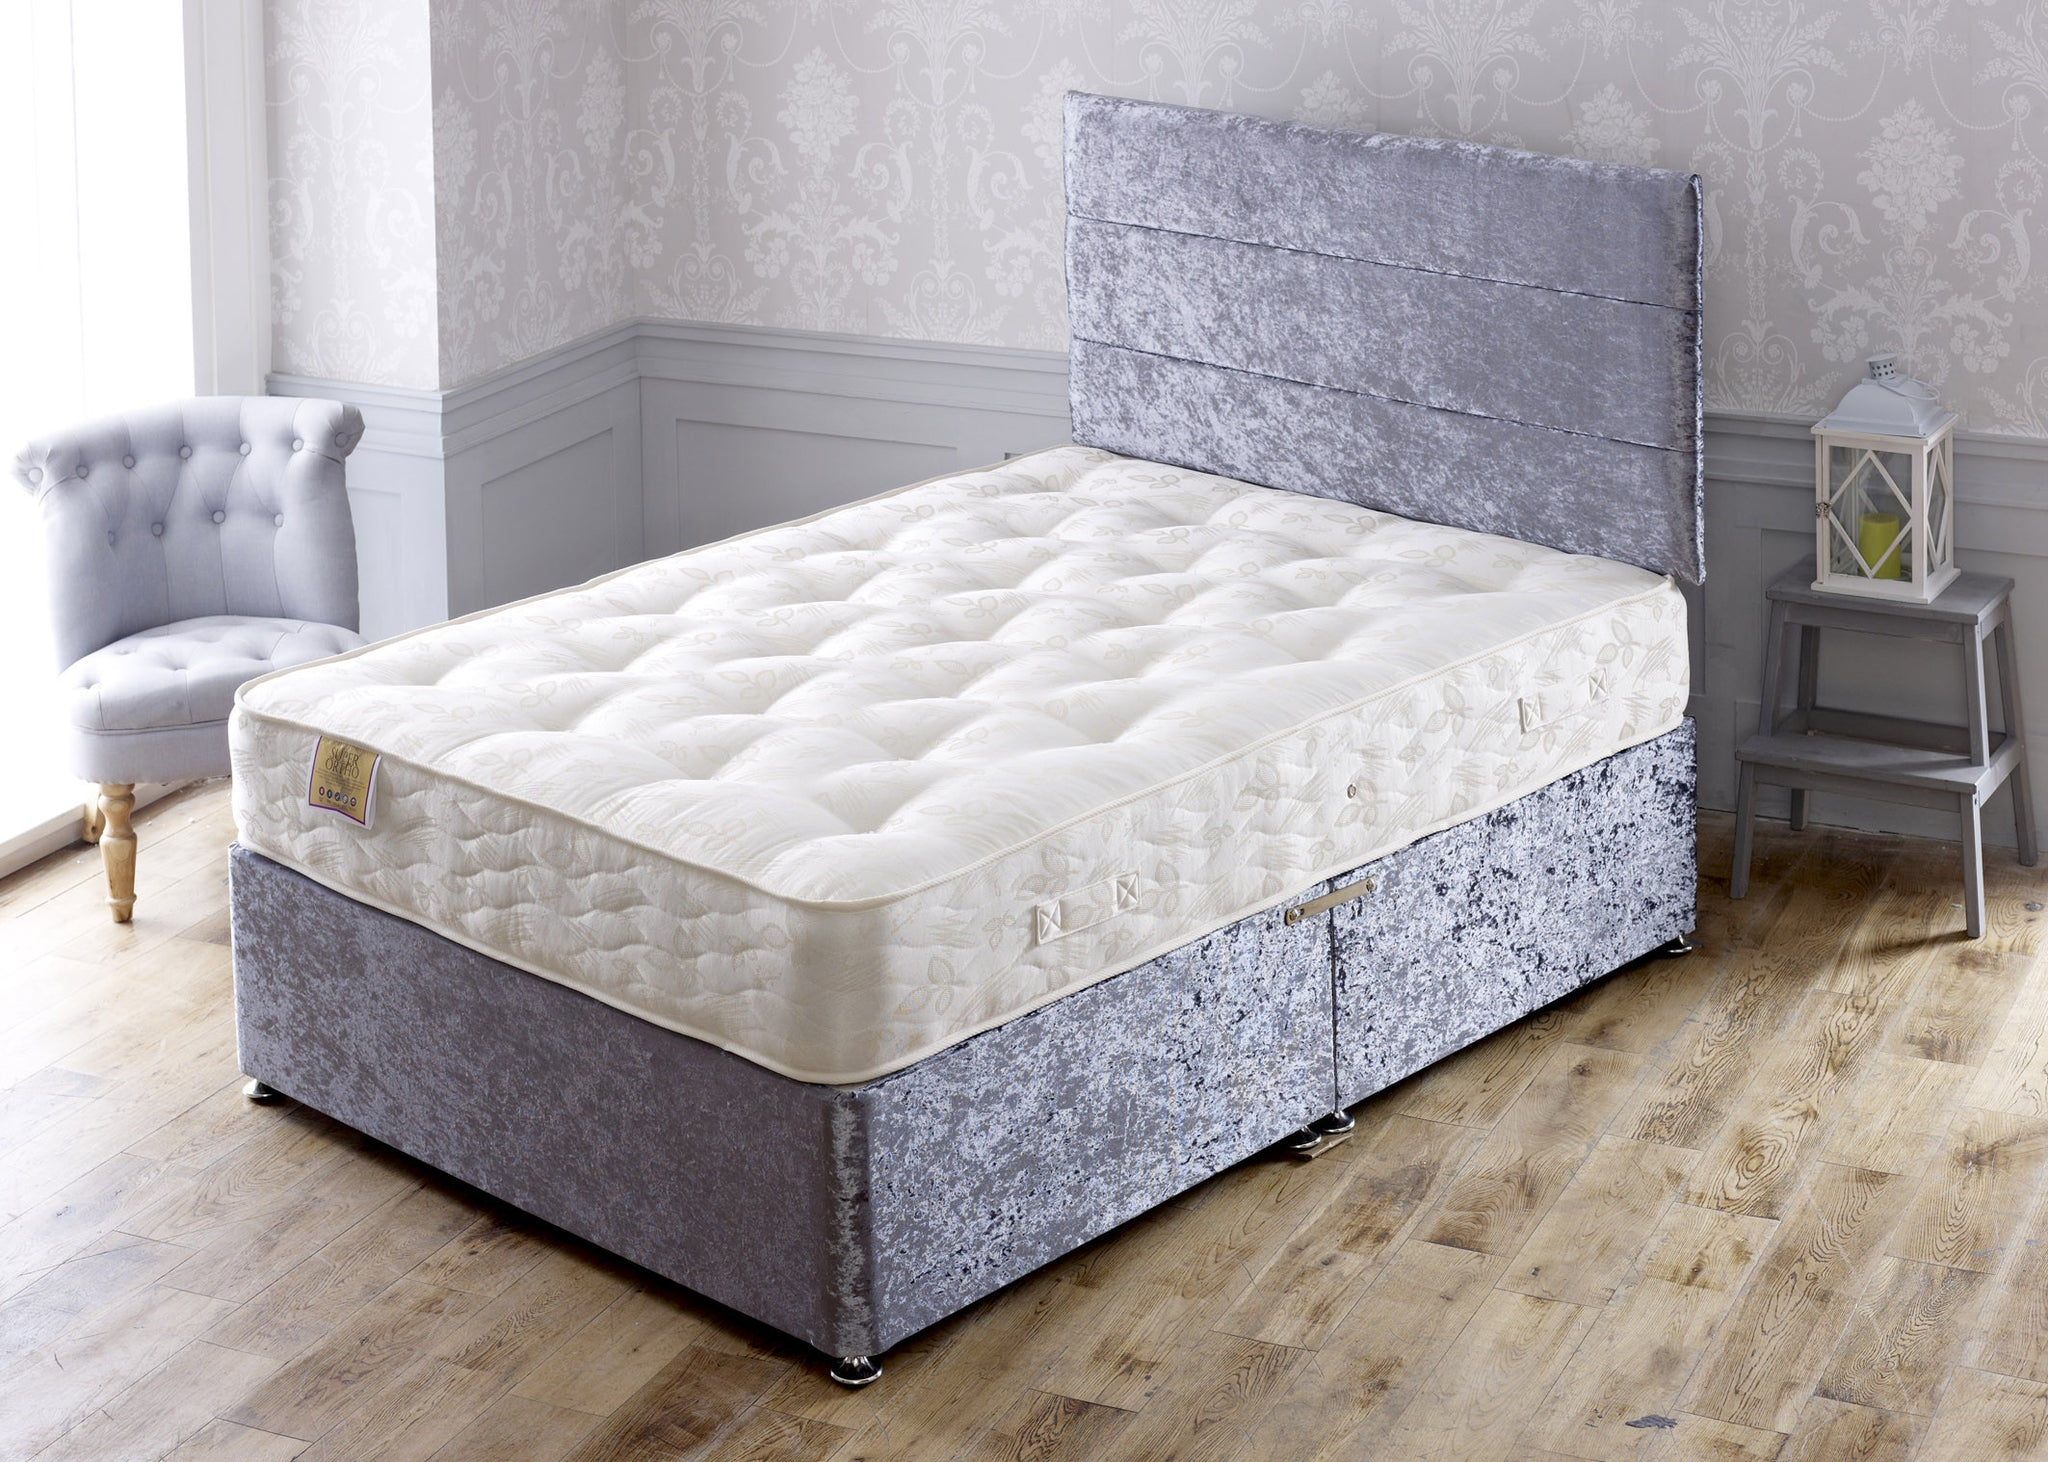 Super Orthopaedic Double Sided Hand Tufted Sprung Divan Set - Cheap Beds Direct